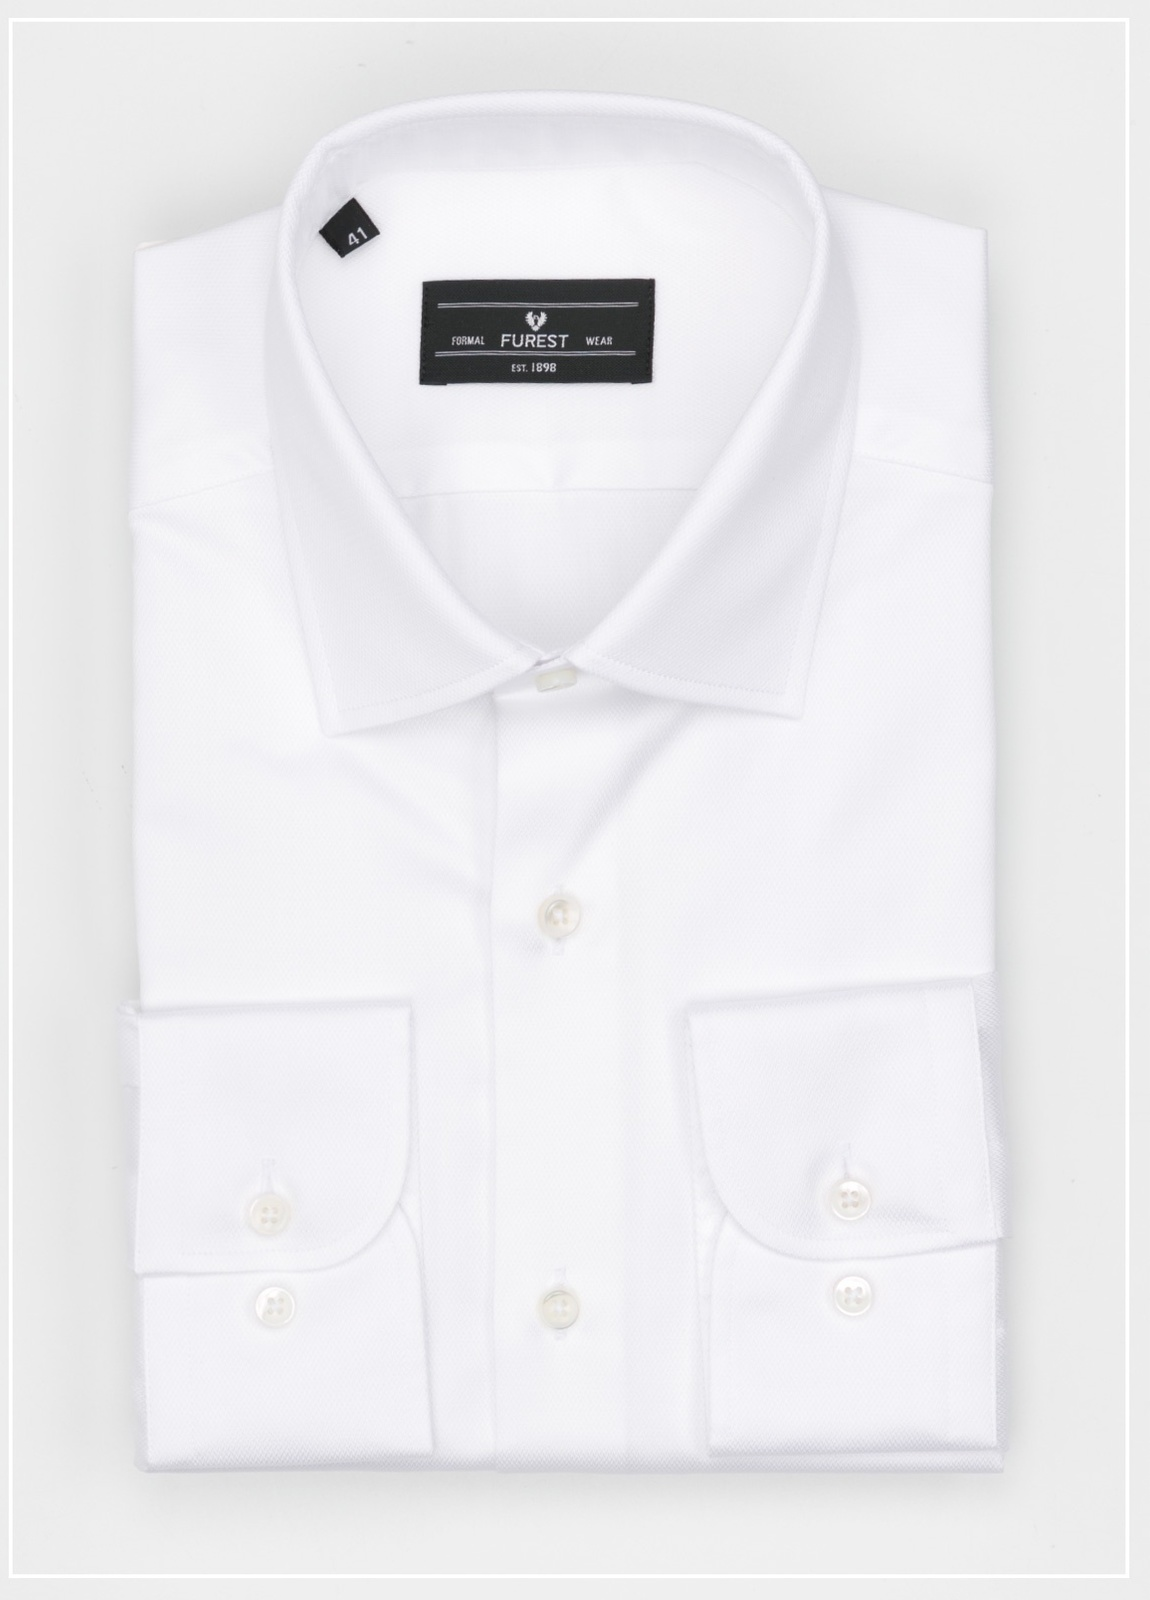 Camisa Formal Wear SLIM FIT cuello italiano modelo ROMA microtextura color blanco, 100% Algodón.